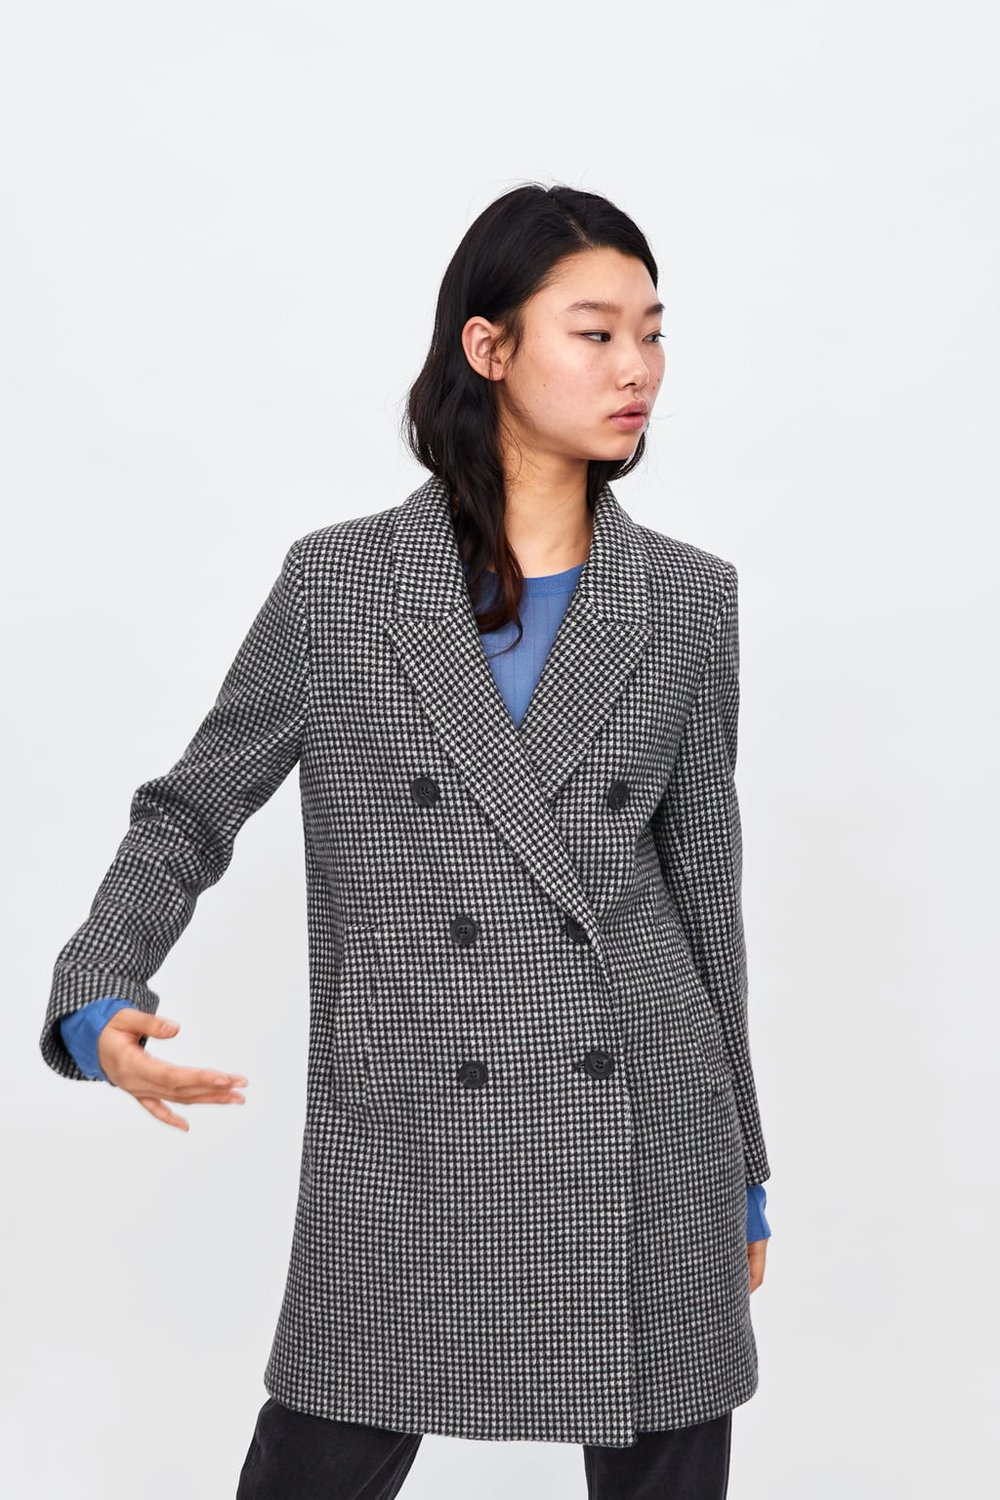 Zara DOUBLE-BREASTED PLAID COAT $119